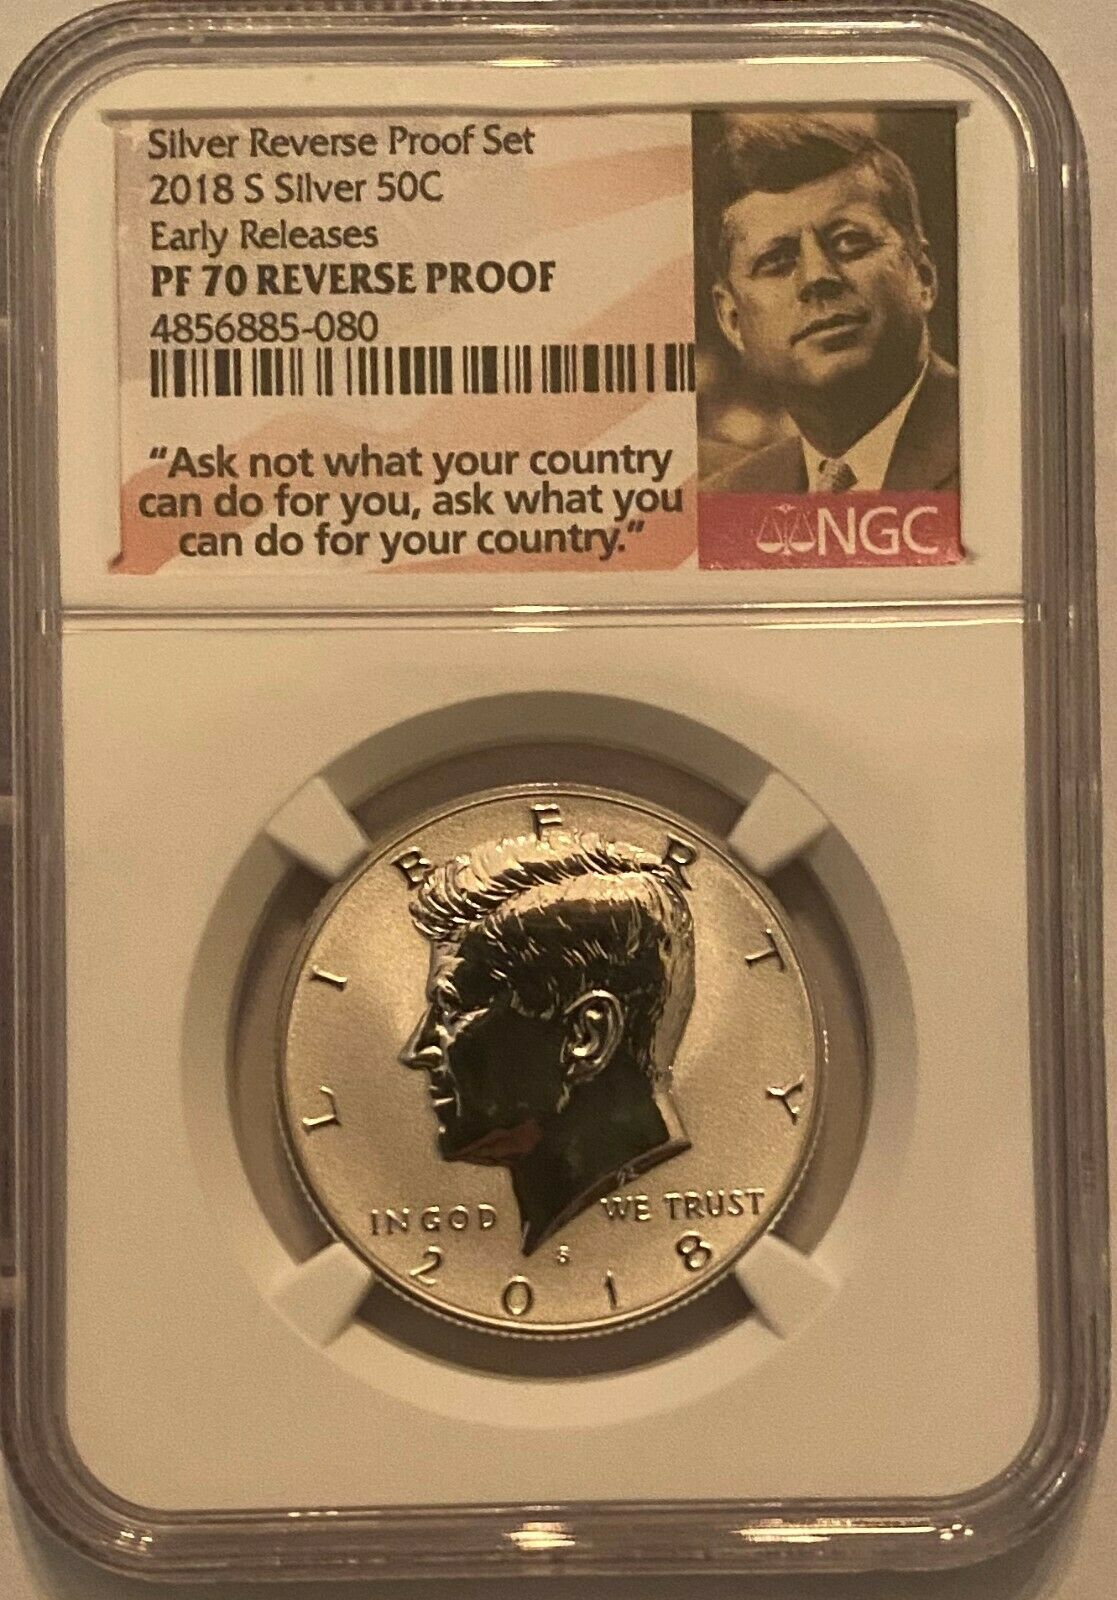 2018 S 50 C KENNEDY LIGHT FINISH NGC PF 70 SILVER REVERSE PROOF ASK NOT LABEL